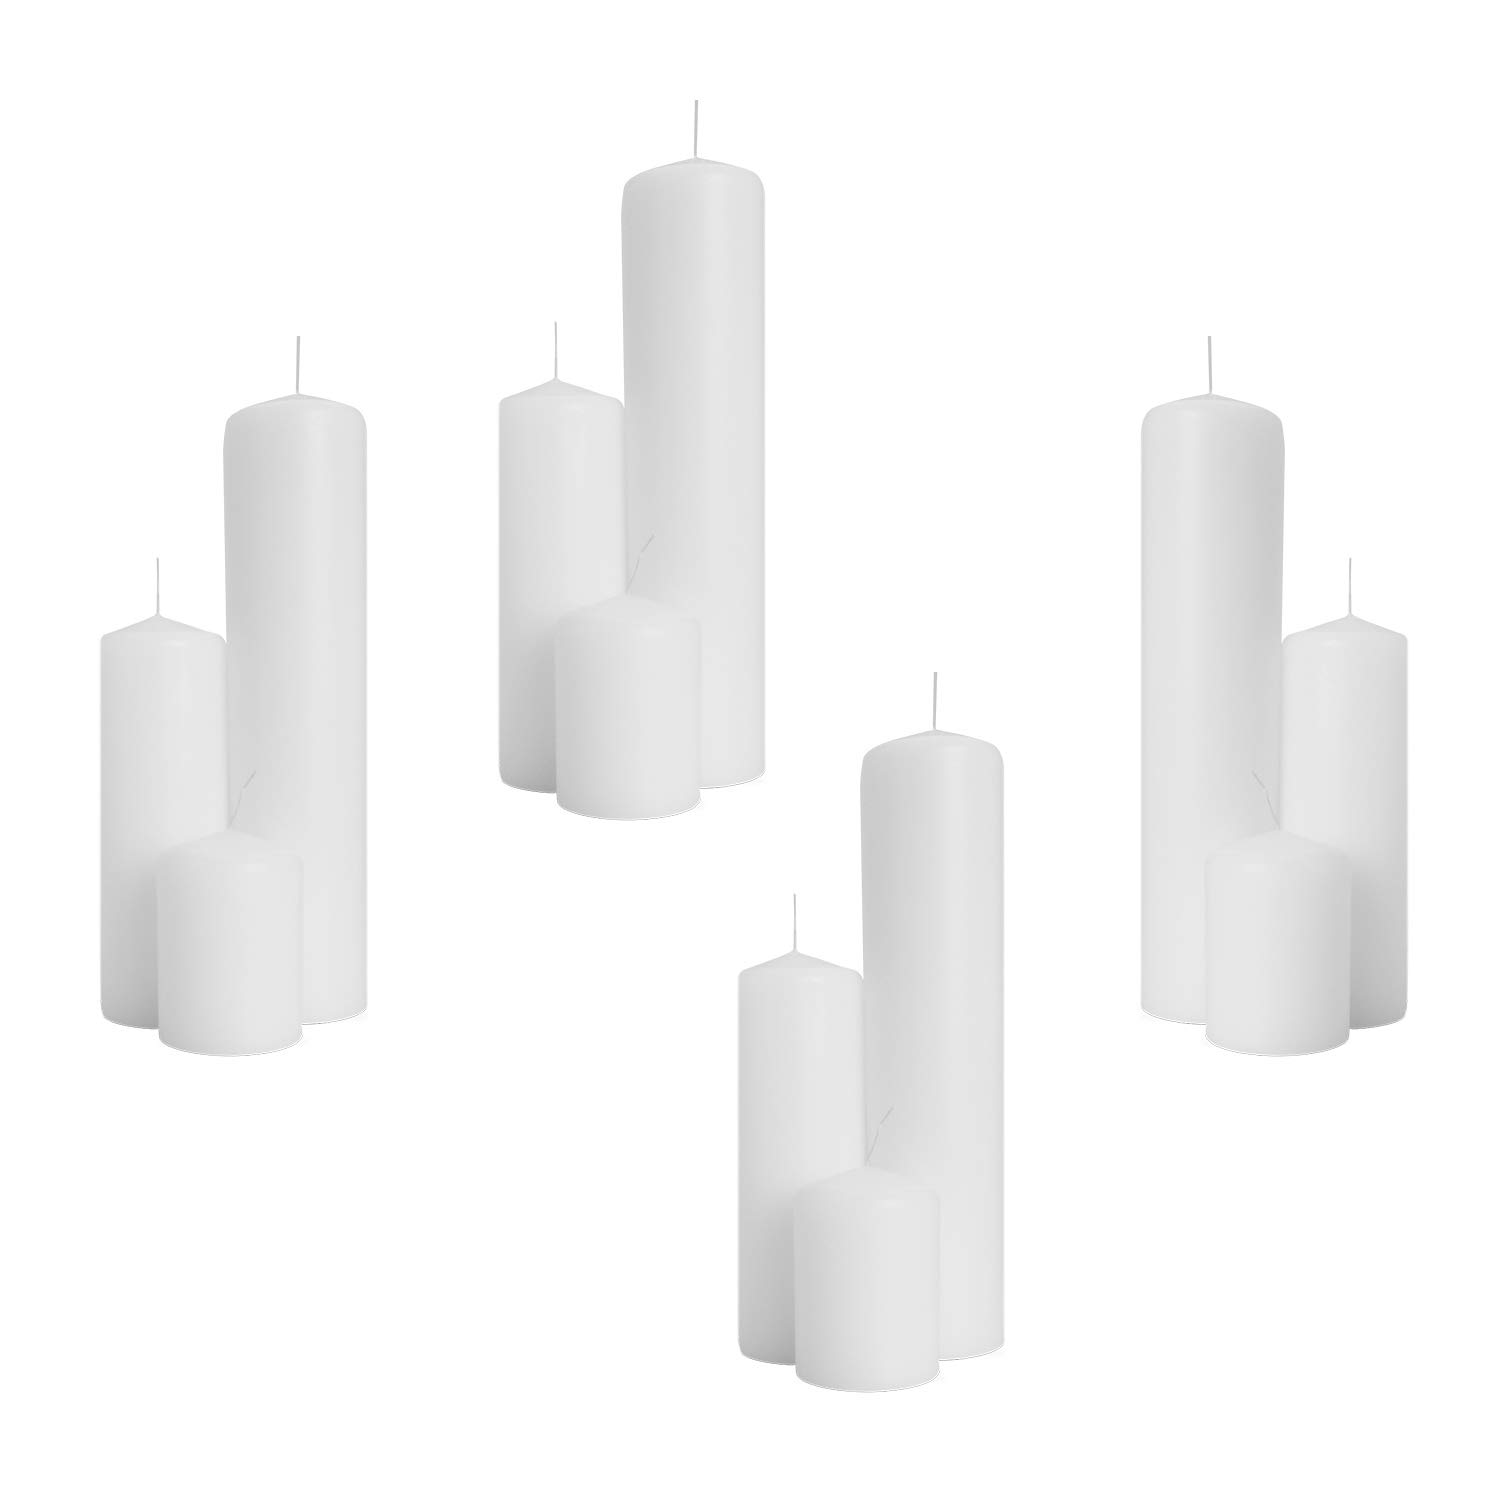 Royal Imports 4 Sets of 2'' Pillar Candles (12 Candles) for Wedding, Birthday, Holiday & Home Decoration, 2x3, 2x6, 2x9, White Wax by Royal Imports